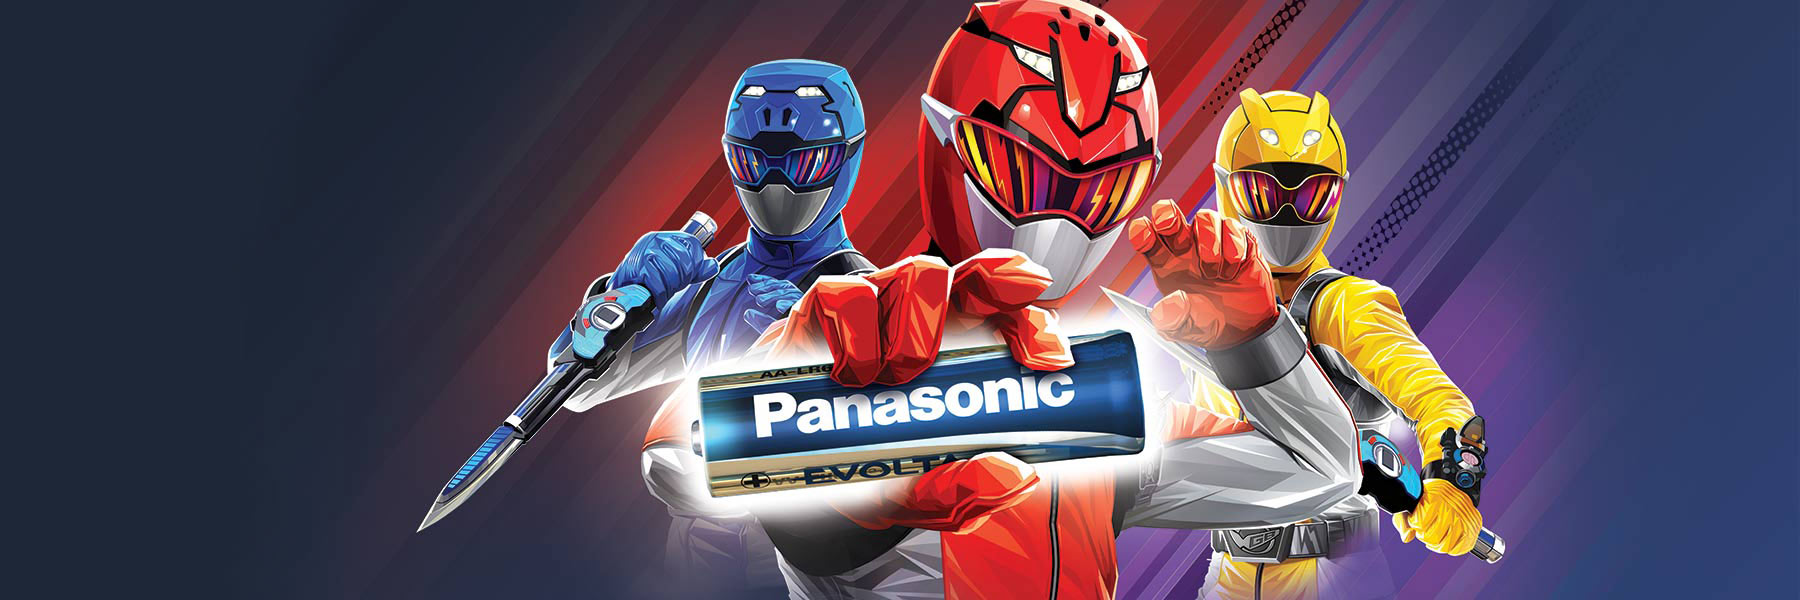 https://www.panasonic-batteries.com/sites/default/files/revslider/image/powerrangers.jpg